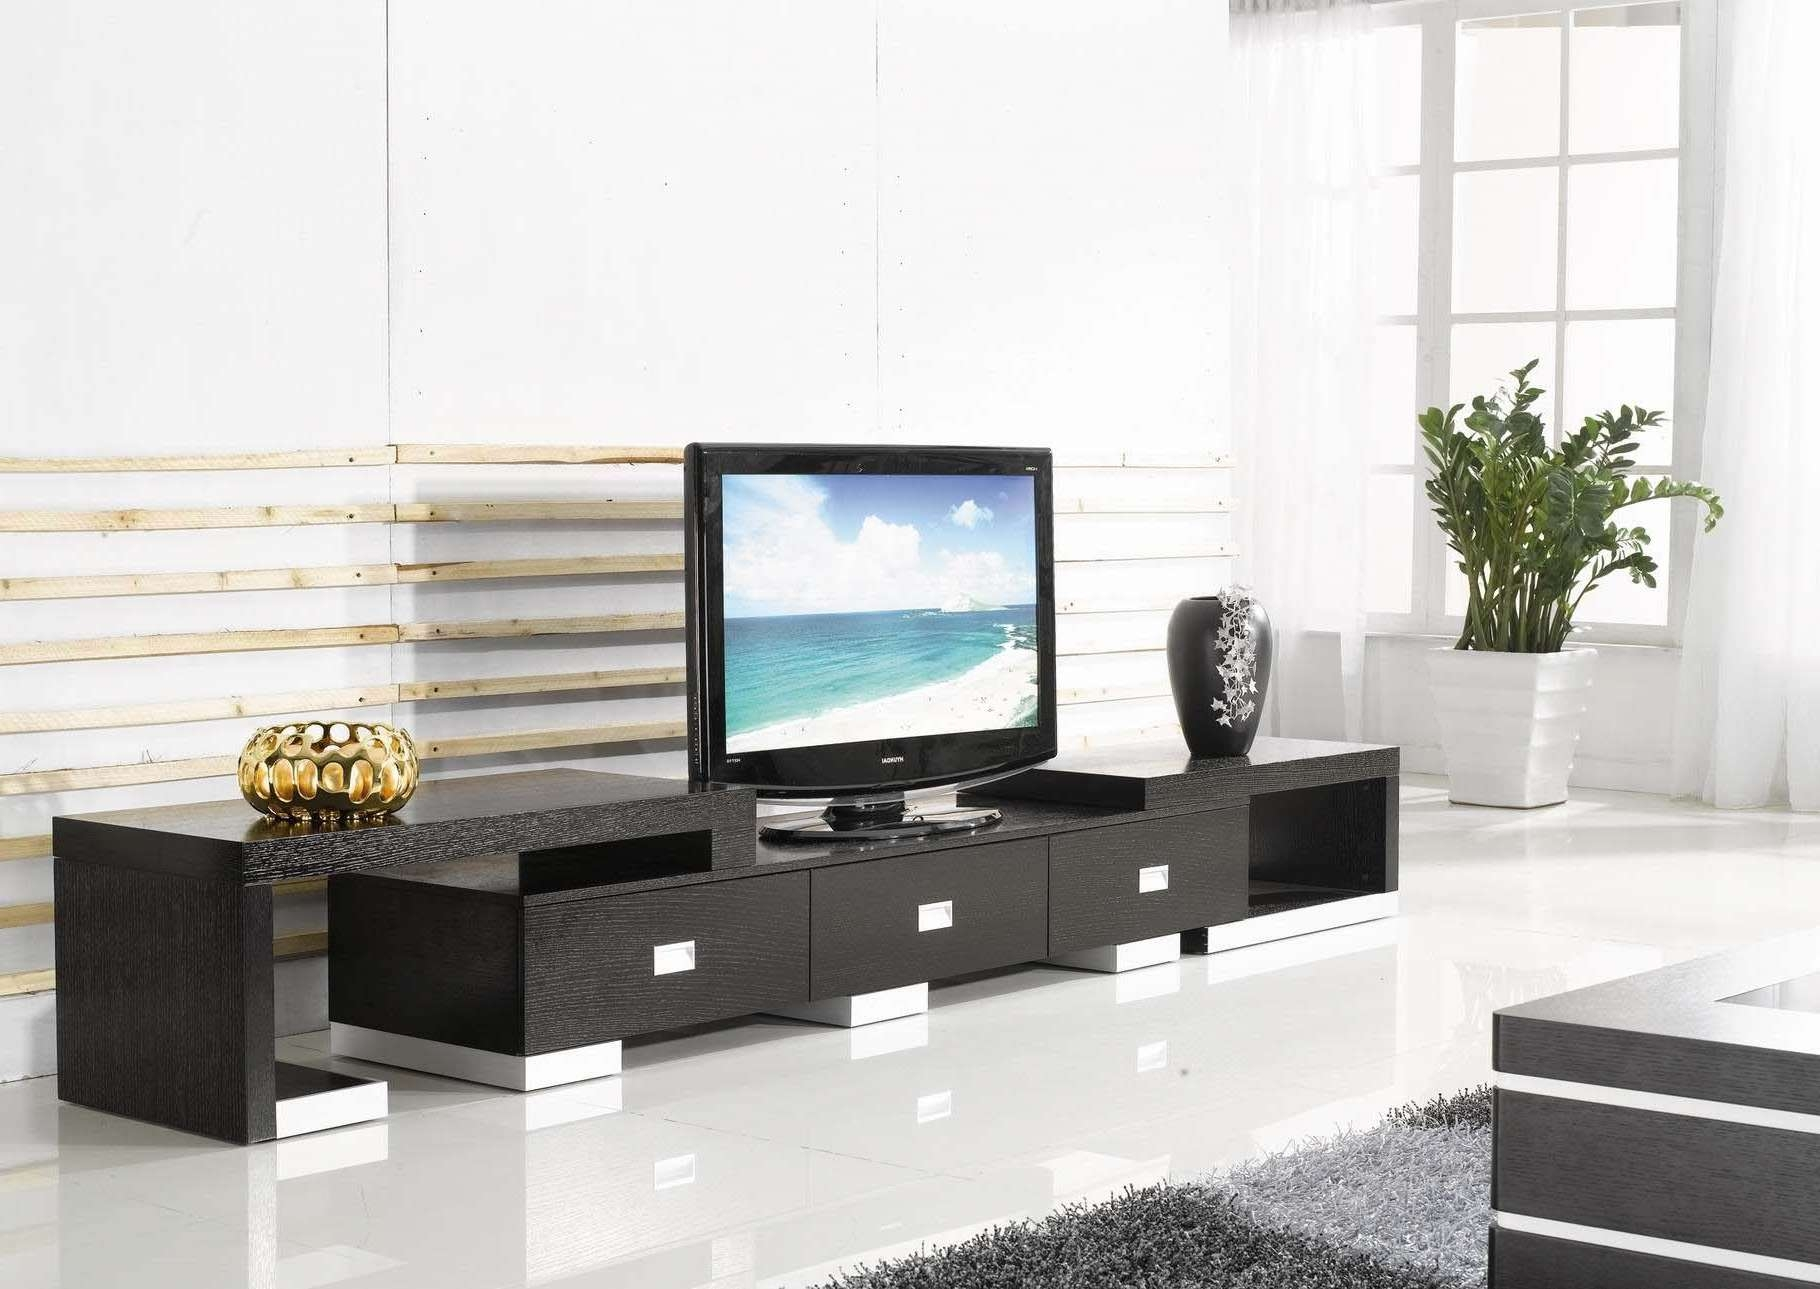 Coffee Tables : Living Room Coffee Table Sets Small Occasional Pertaining To Tv Cabinets And Coffee Table Sets (View 12 of 20)